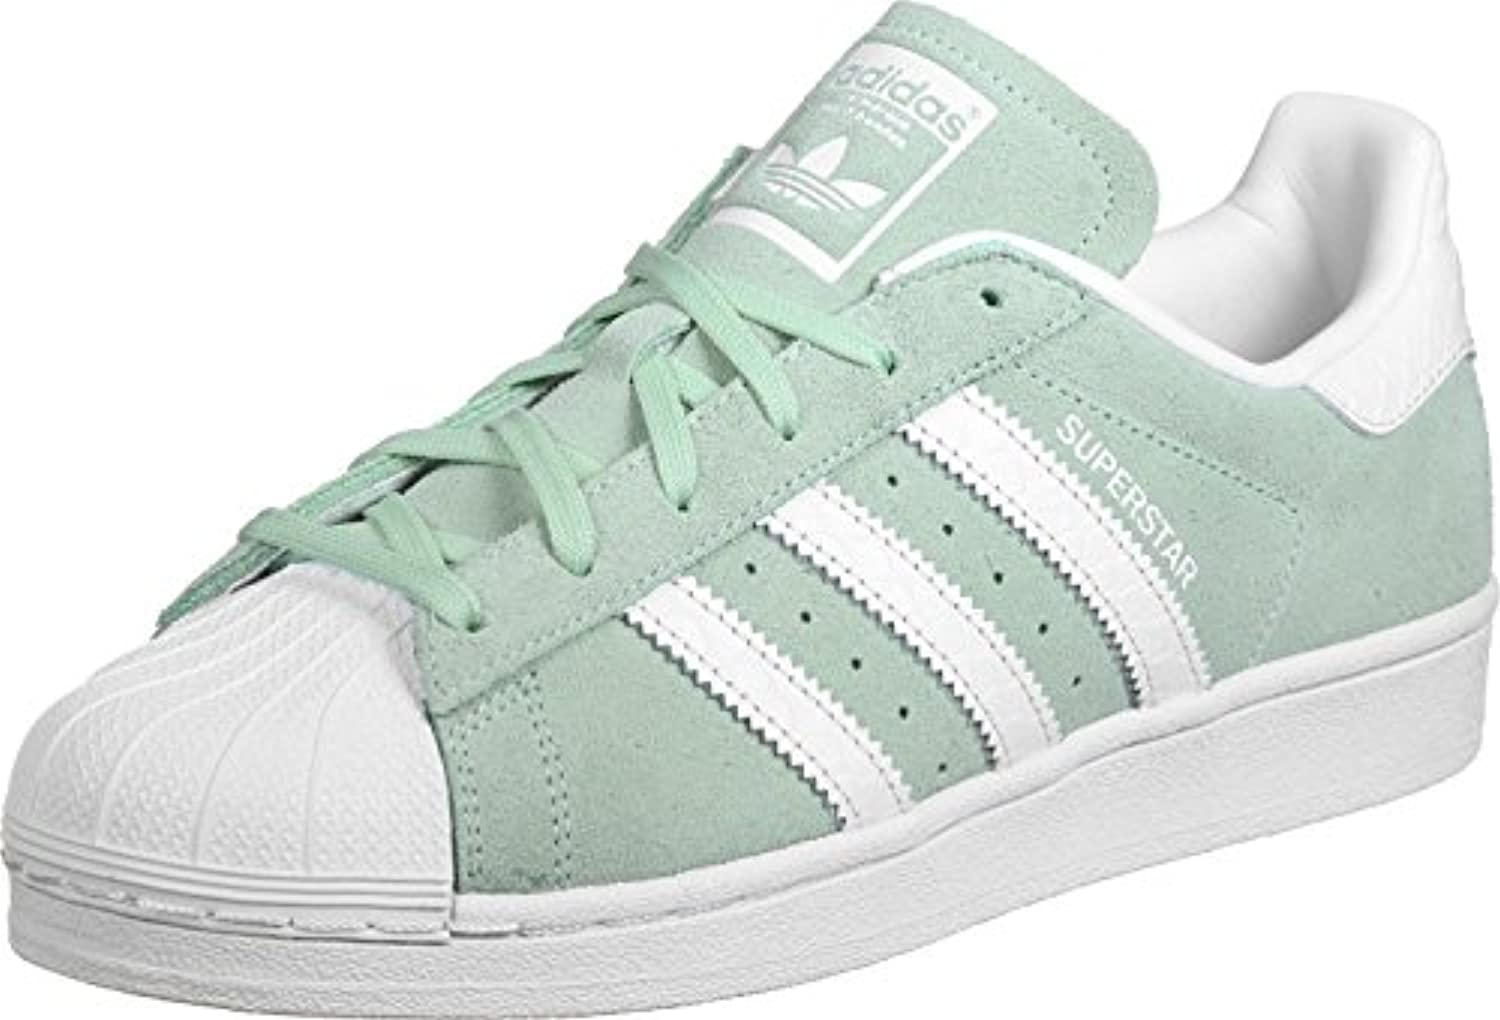 adidas womens superstar mint 8.5